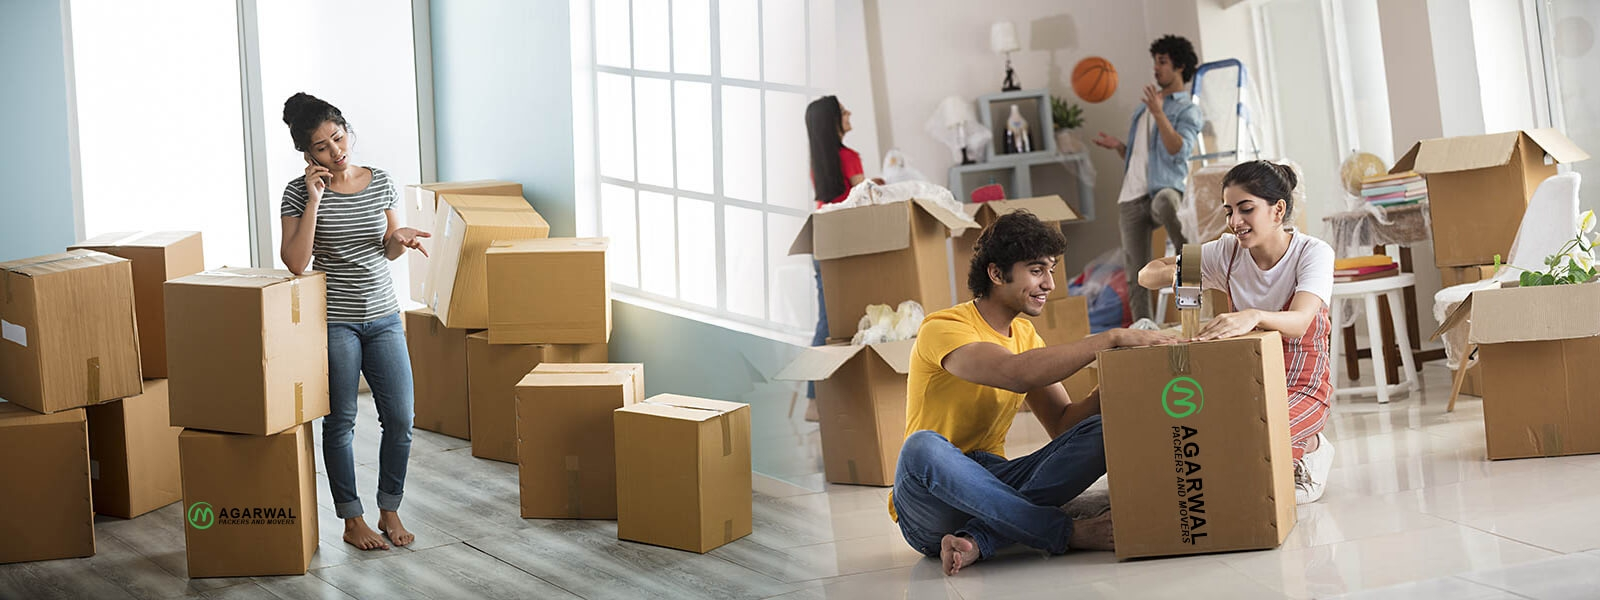 M Agarwal Packers and Movers  (@magarwal32) Cover Image